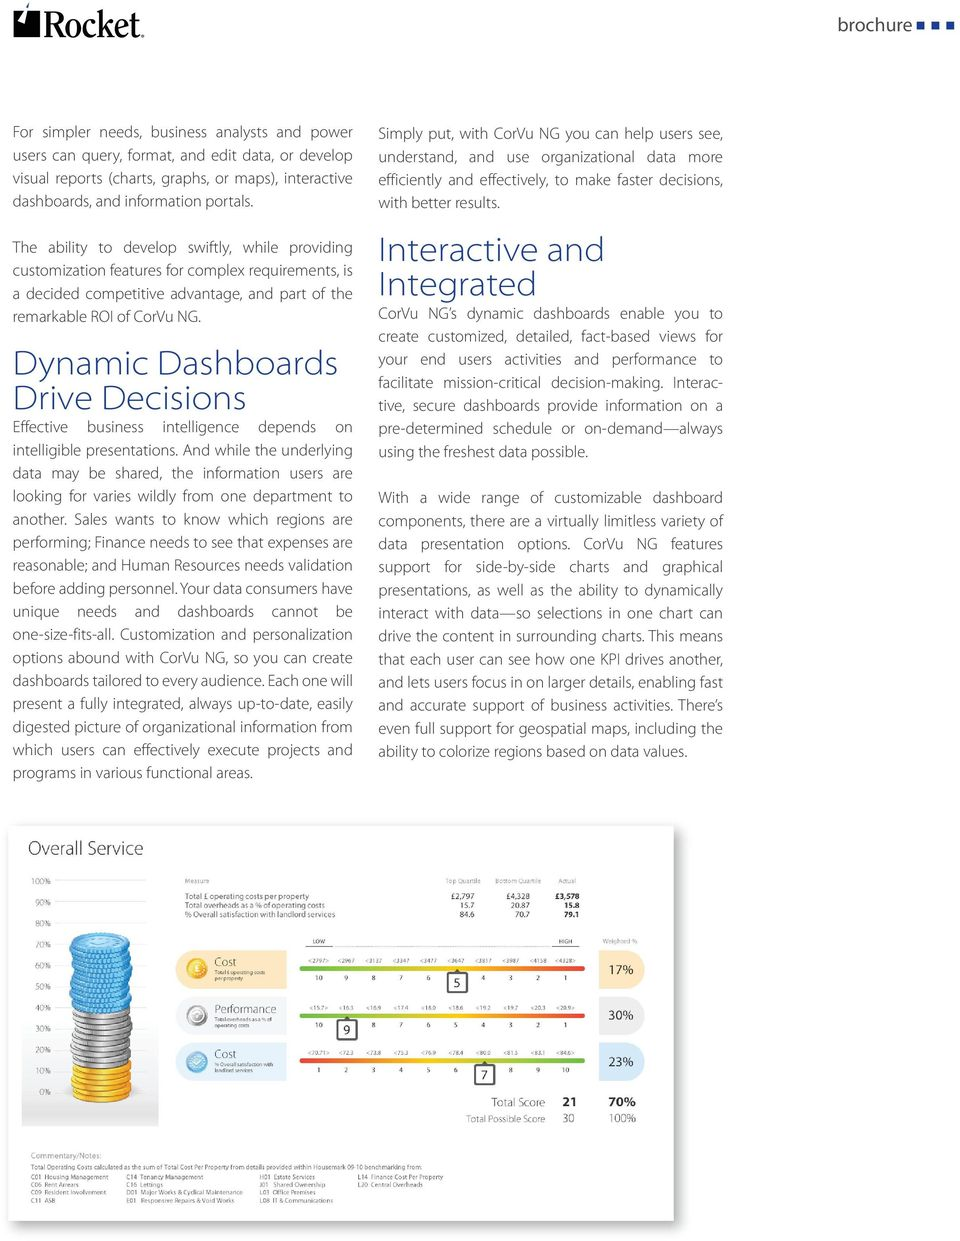 Dynamic Dashboards Drive Decisions Effective business intelligence depends on intelligible presentations.